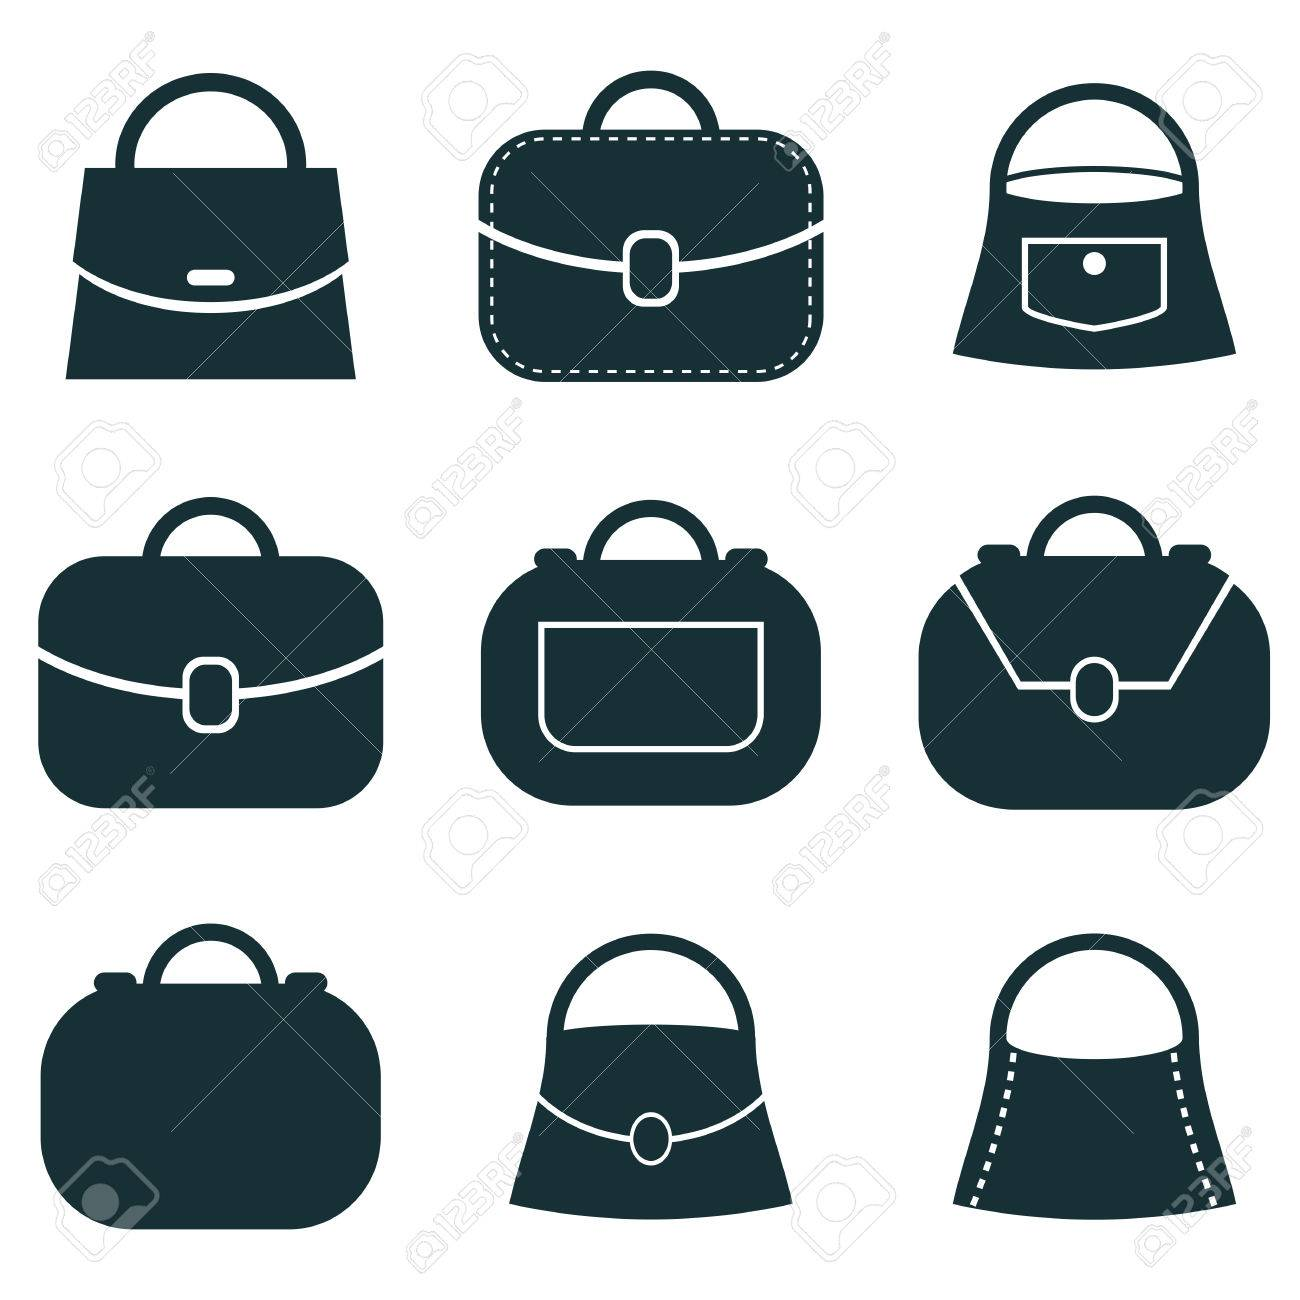 Bag Vector Icons Set Symbols Collection Royalty Free Cliparts